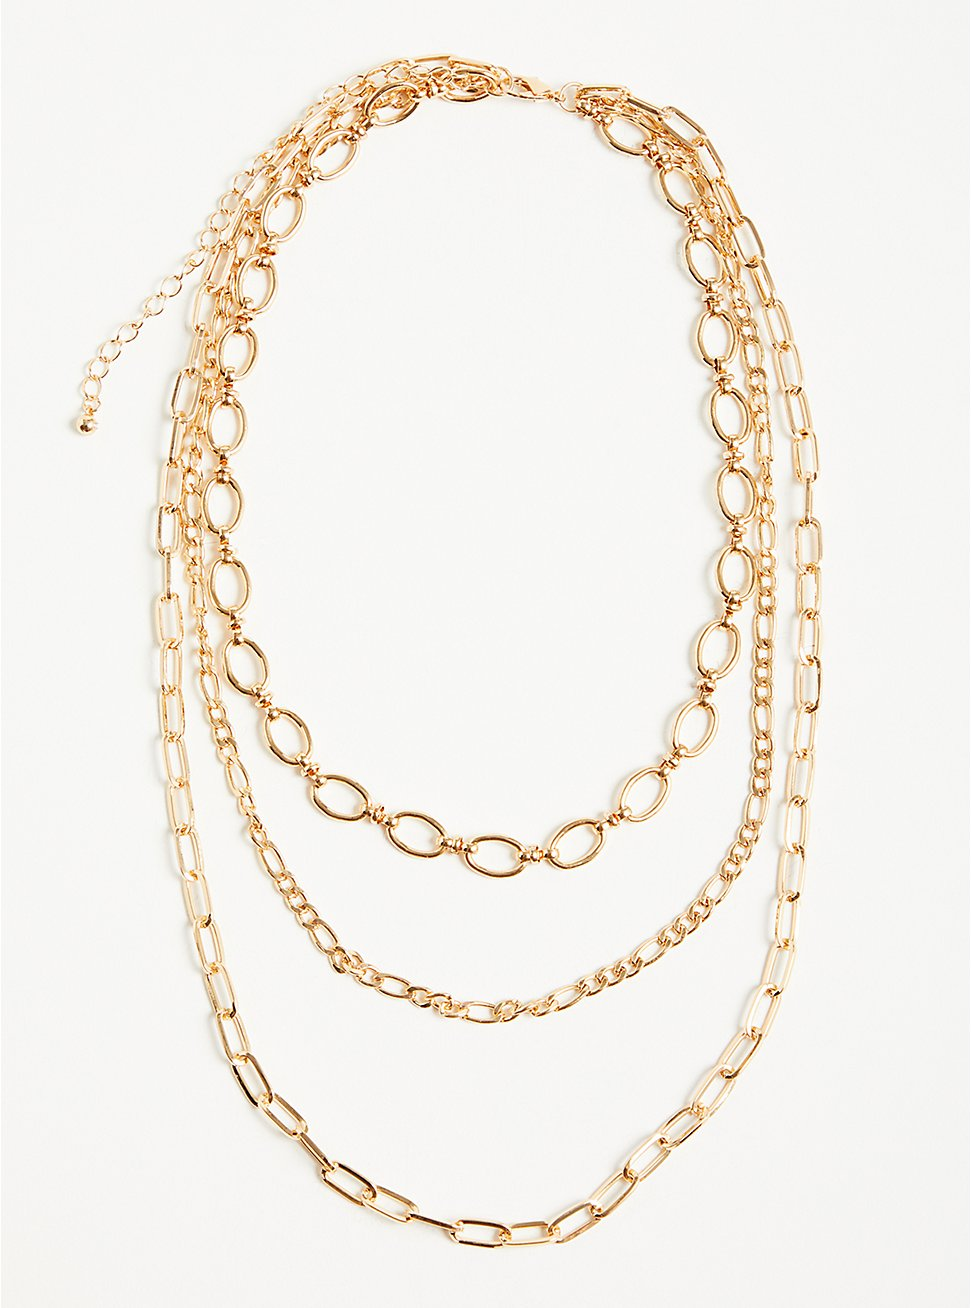 Plus Size Chunky Link Layered Necklace - Gold Tone, , hi-res